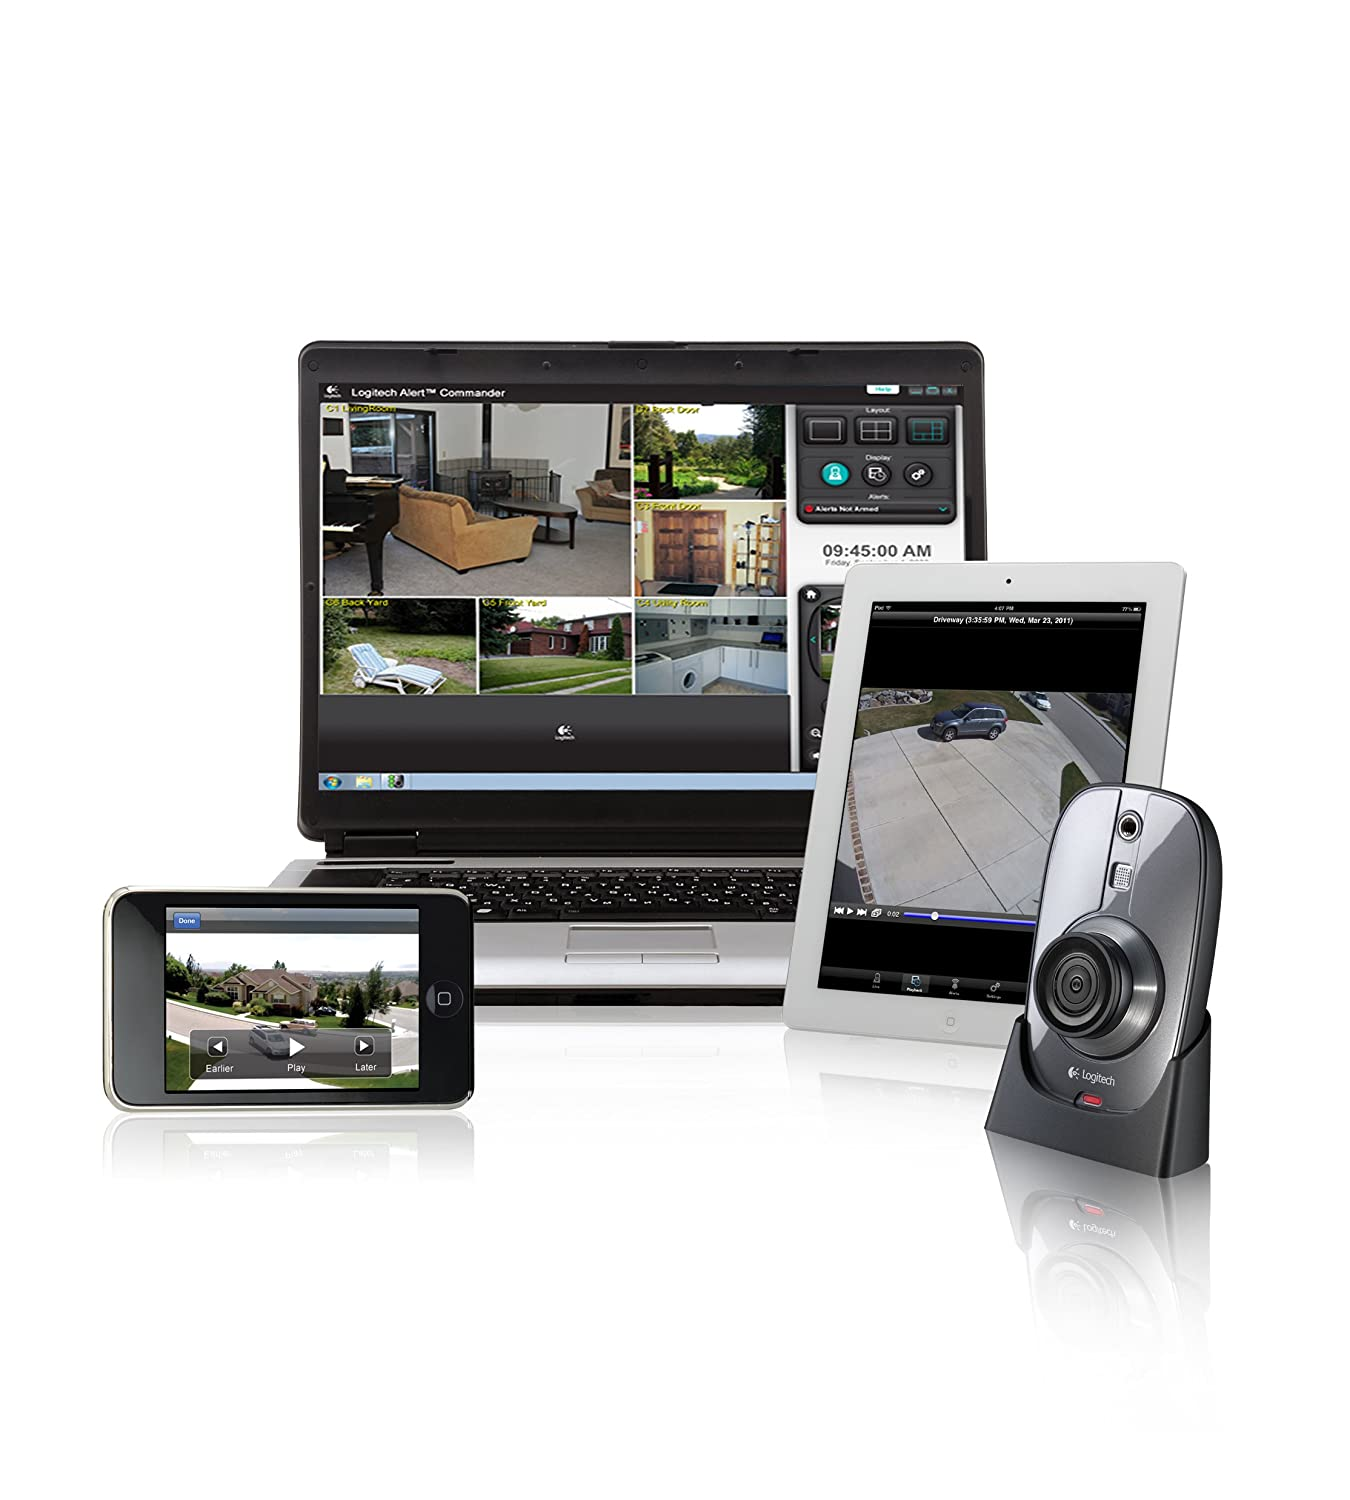 cfb77cd88ce Amazon.com: Logitech Alert 750i Indoor Master - HD-Quality Security System:  Home Improvement